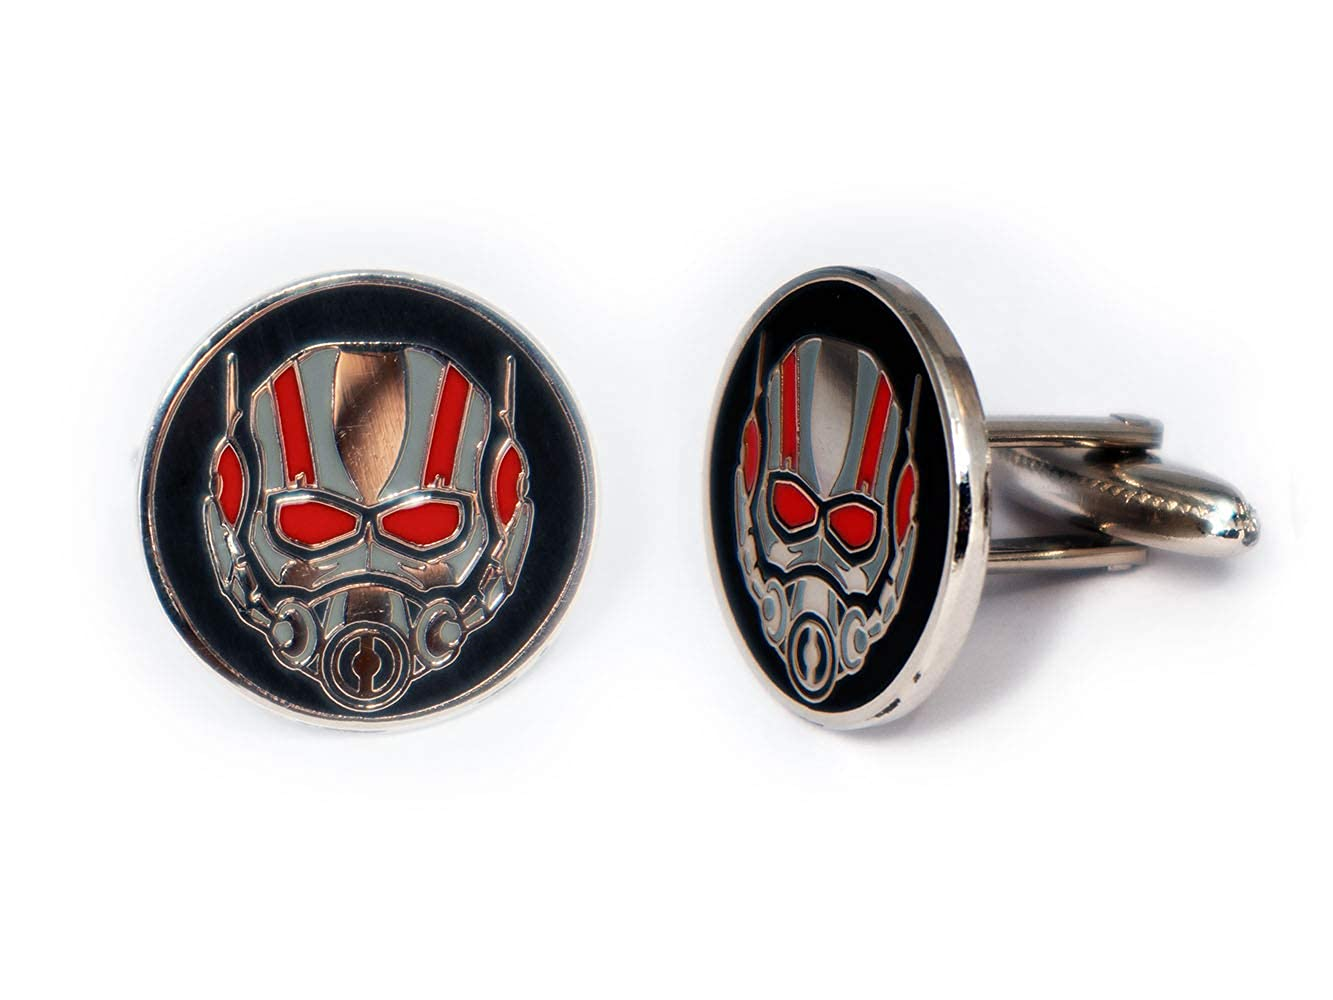 SharedImagination Ant-Man Cufflinks, The Avengers Tie Clip, Wasp Jewelry, Superhero Wedding Party and Groomsmen Gift Gifts, Geek Geeky Present Nerd Presents